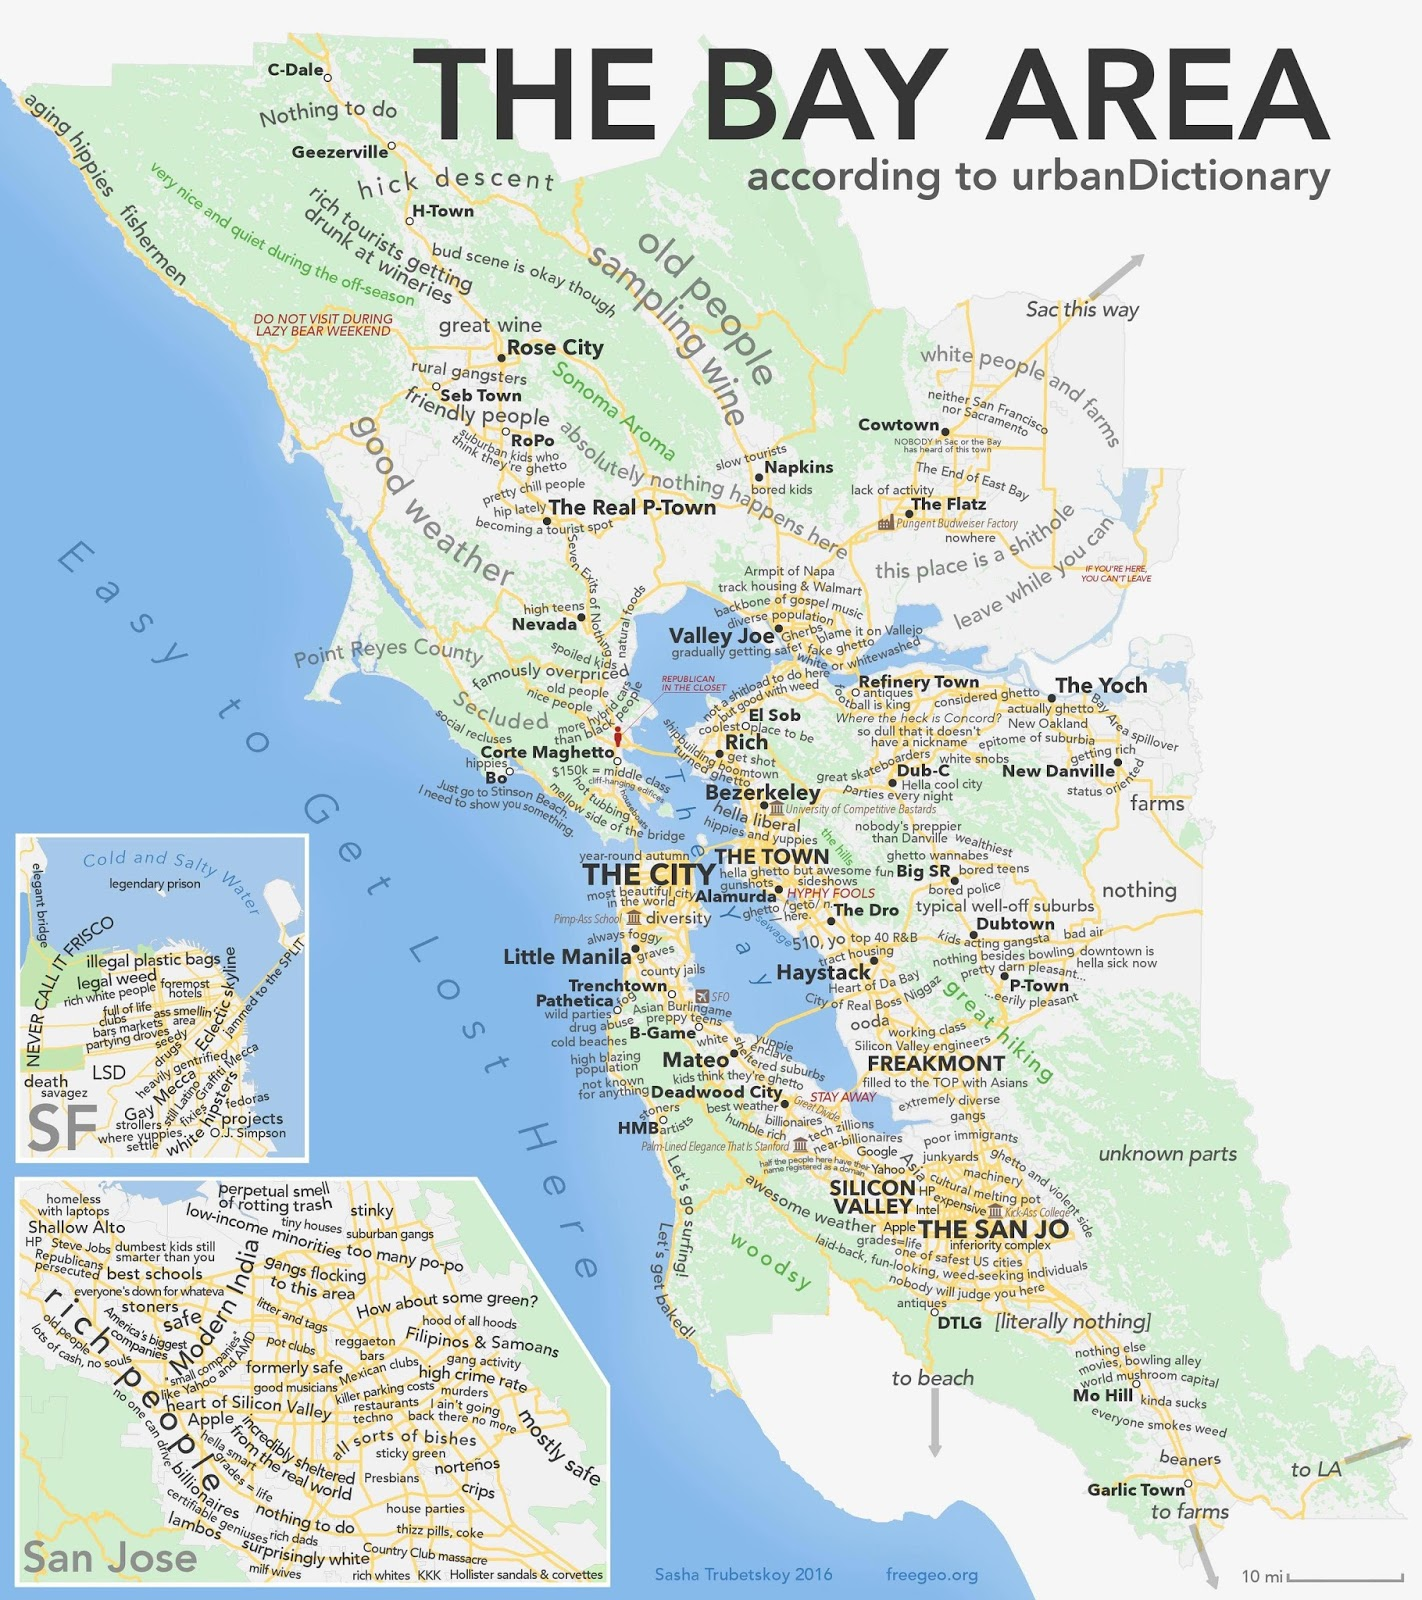 The Bay Area according to Urban Dictionary